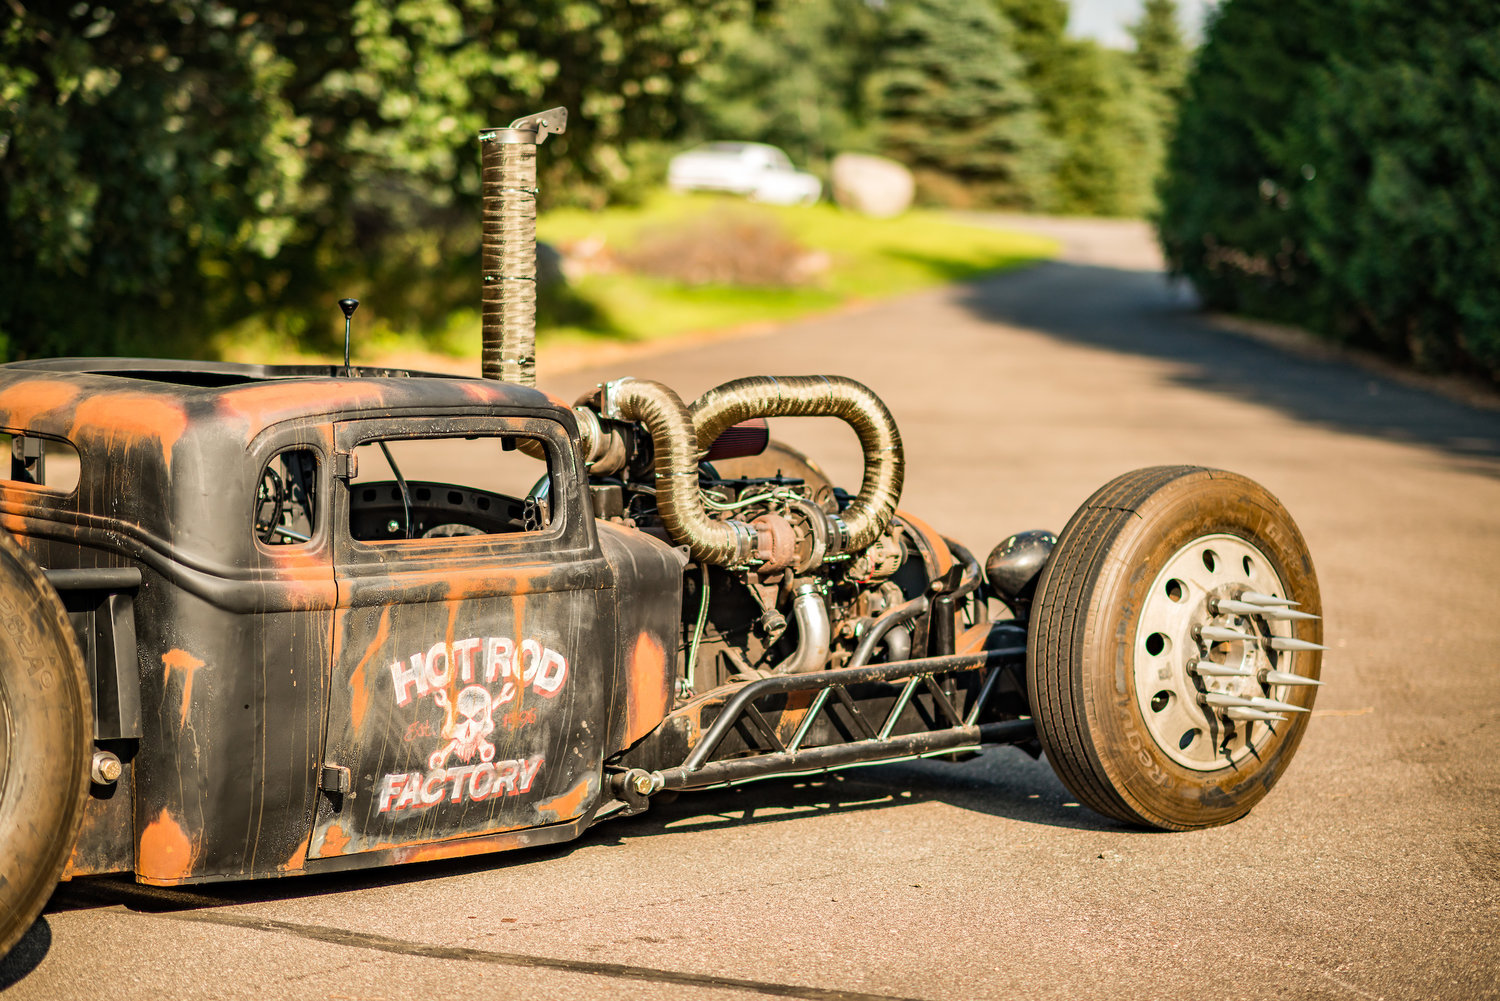 Tour: Rat Rod — Hot Rod Factory | Hot Rod Cars Shop